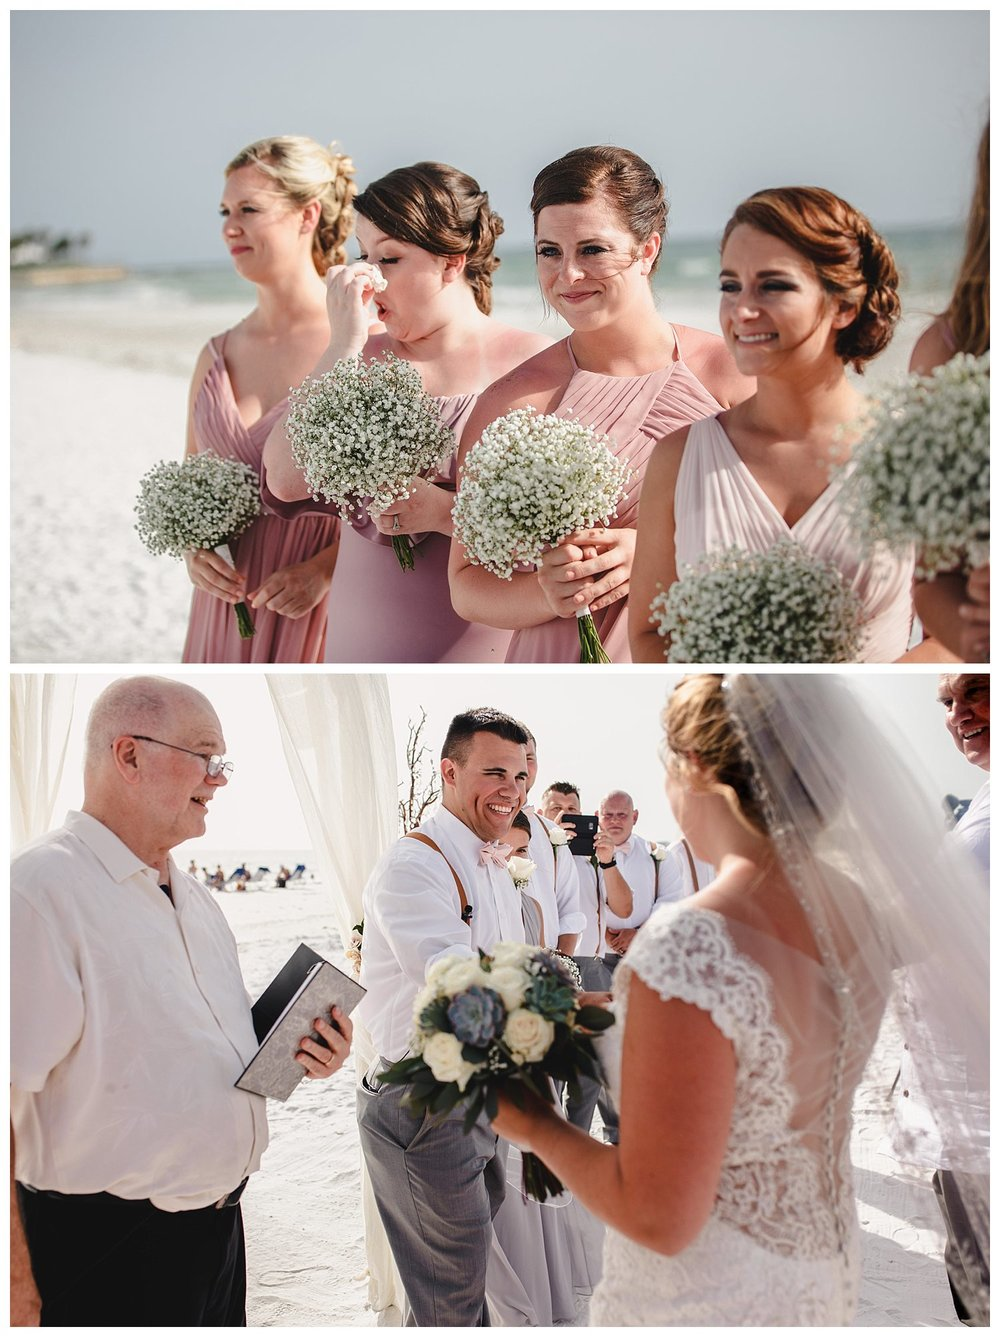 Kelsey_Diane_Photography_Destination_Wedding_Sarasota_Florida_Beach_Wedding_Alex_Austin_0646.jpg